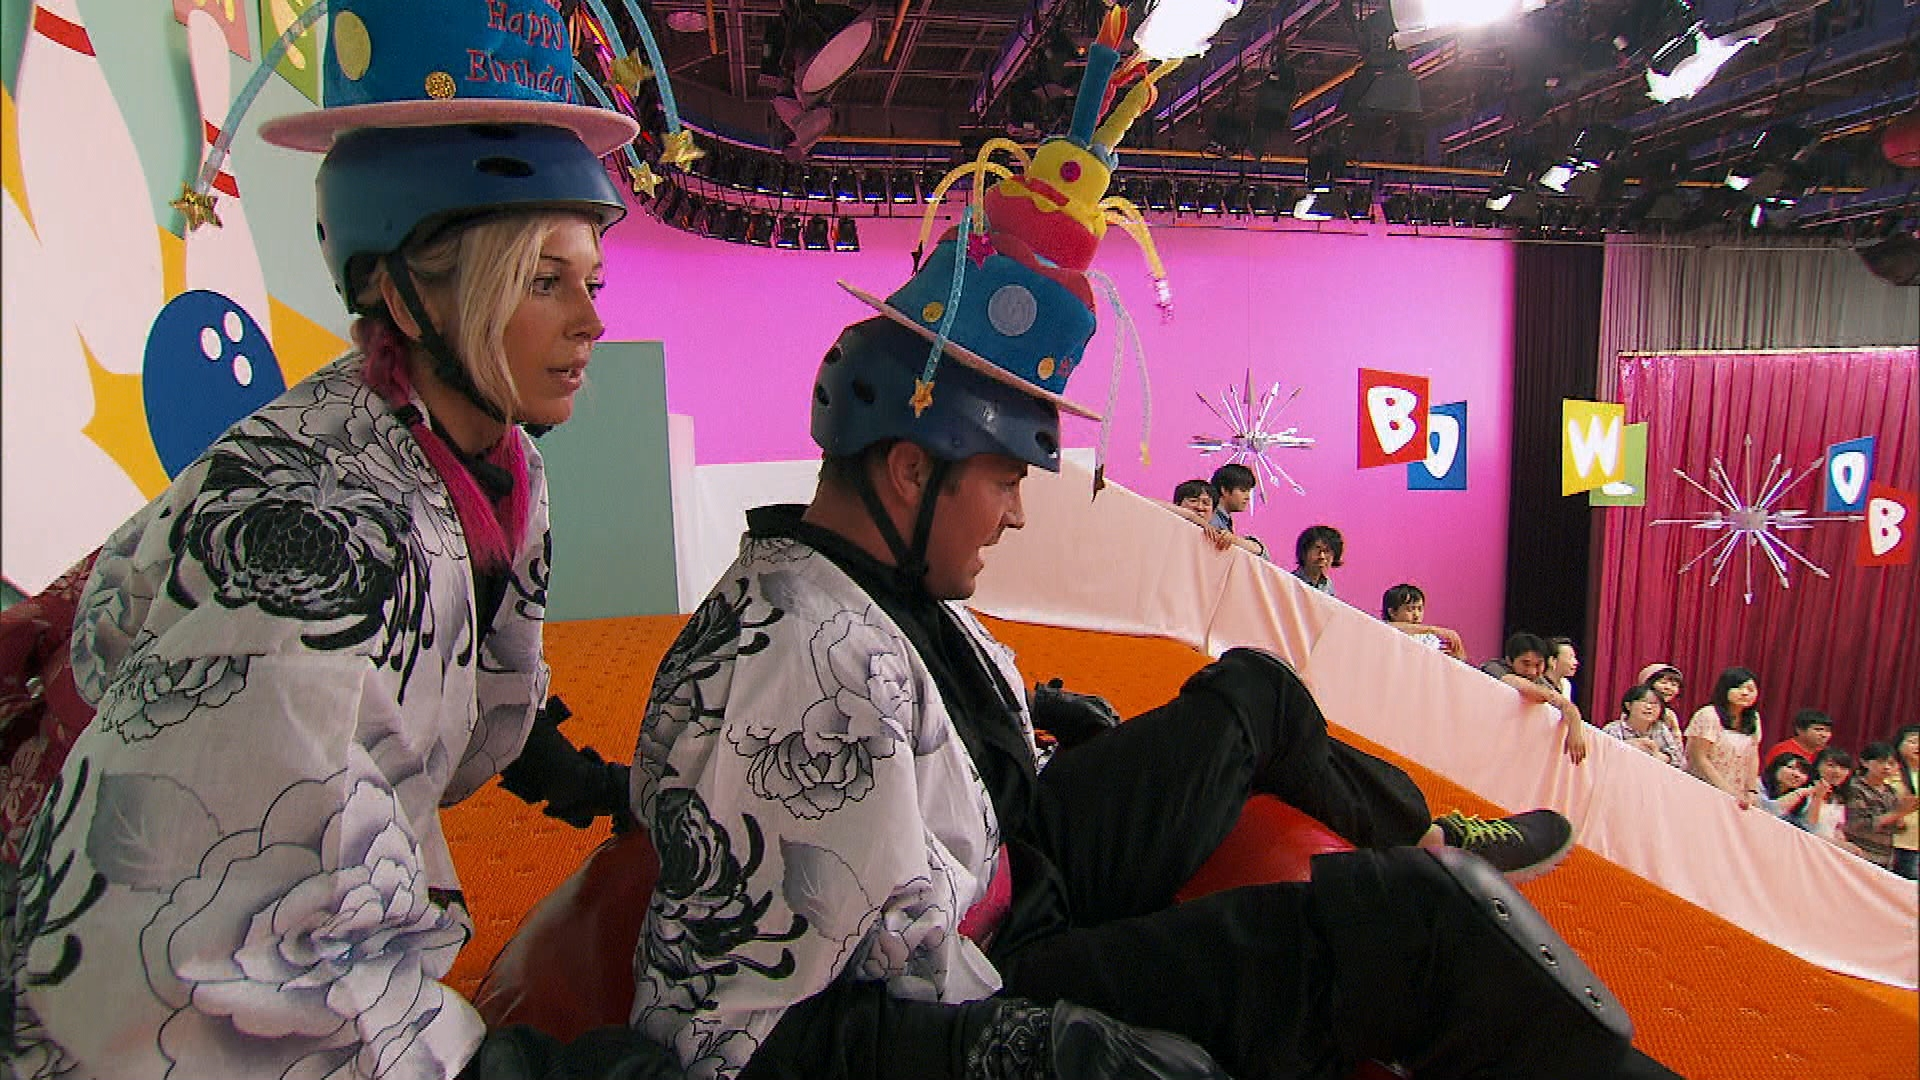 Human bowling balls in the Season 23 Finale